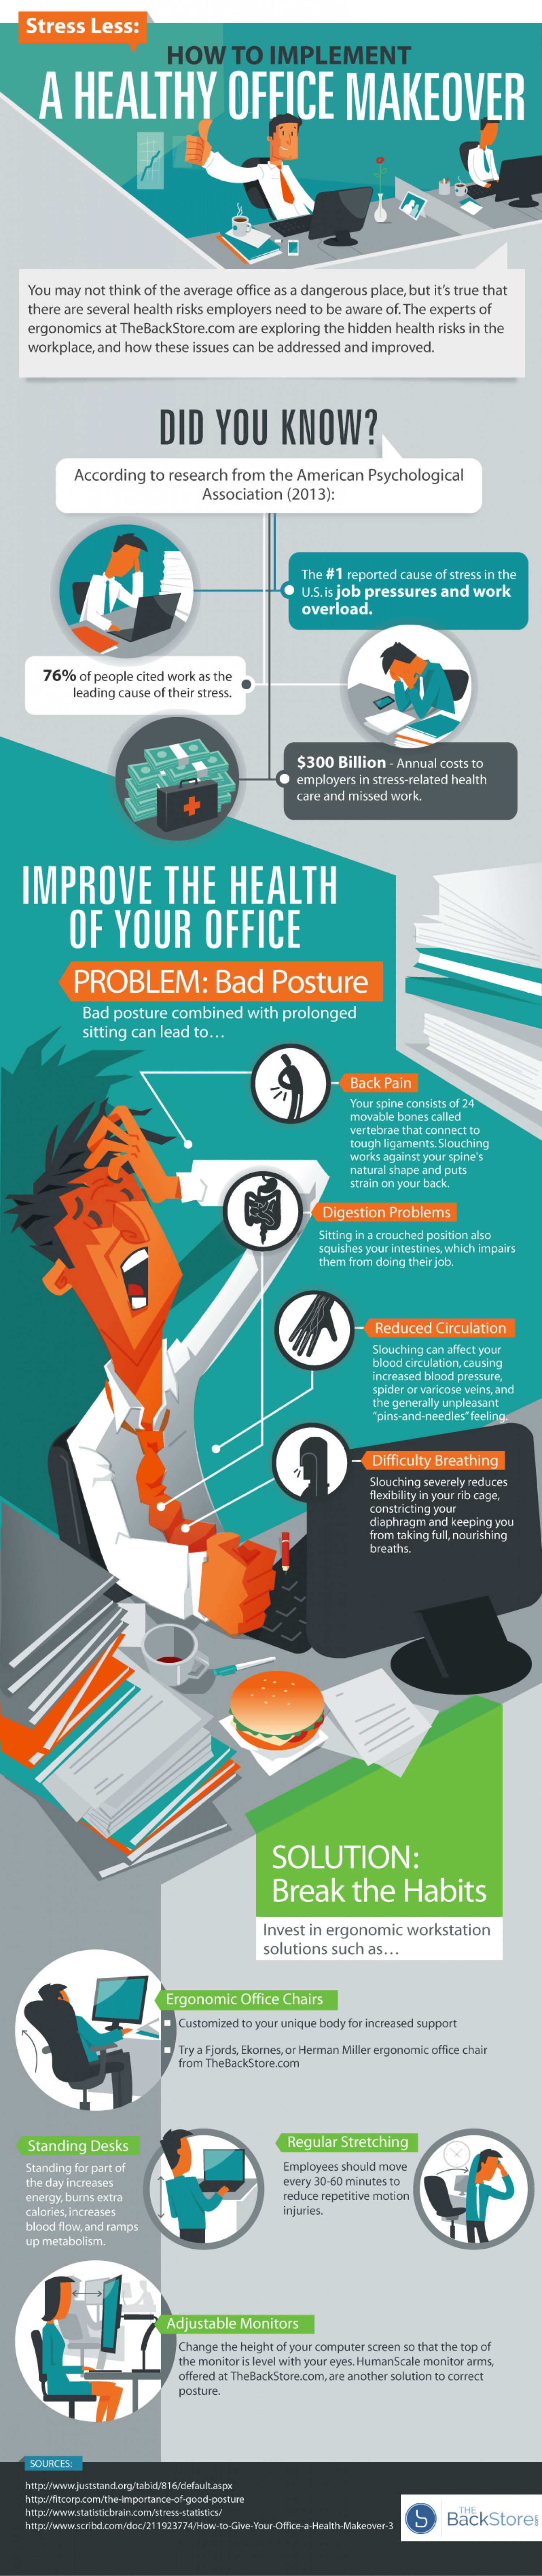 How To Implement A Healthy Office Makeover Infographic